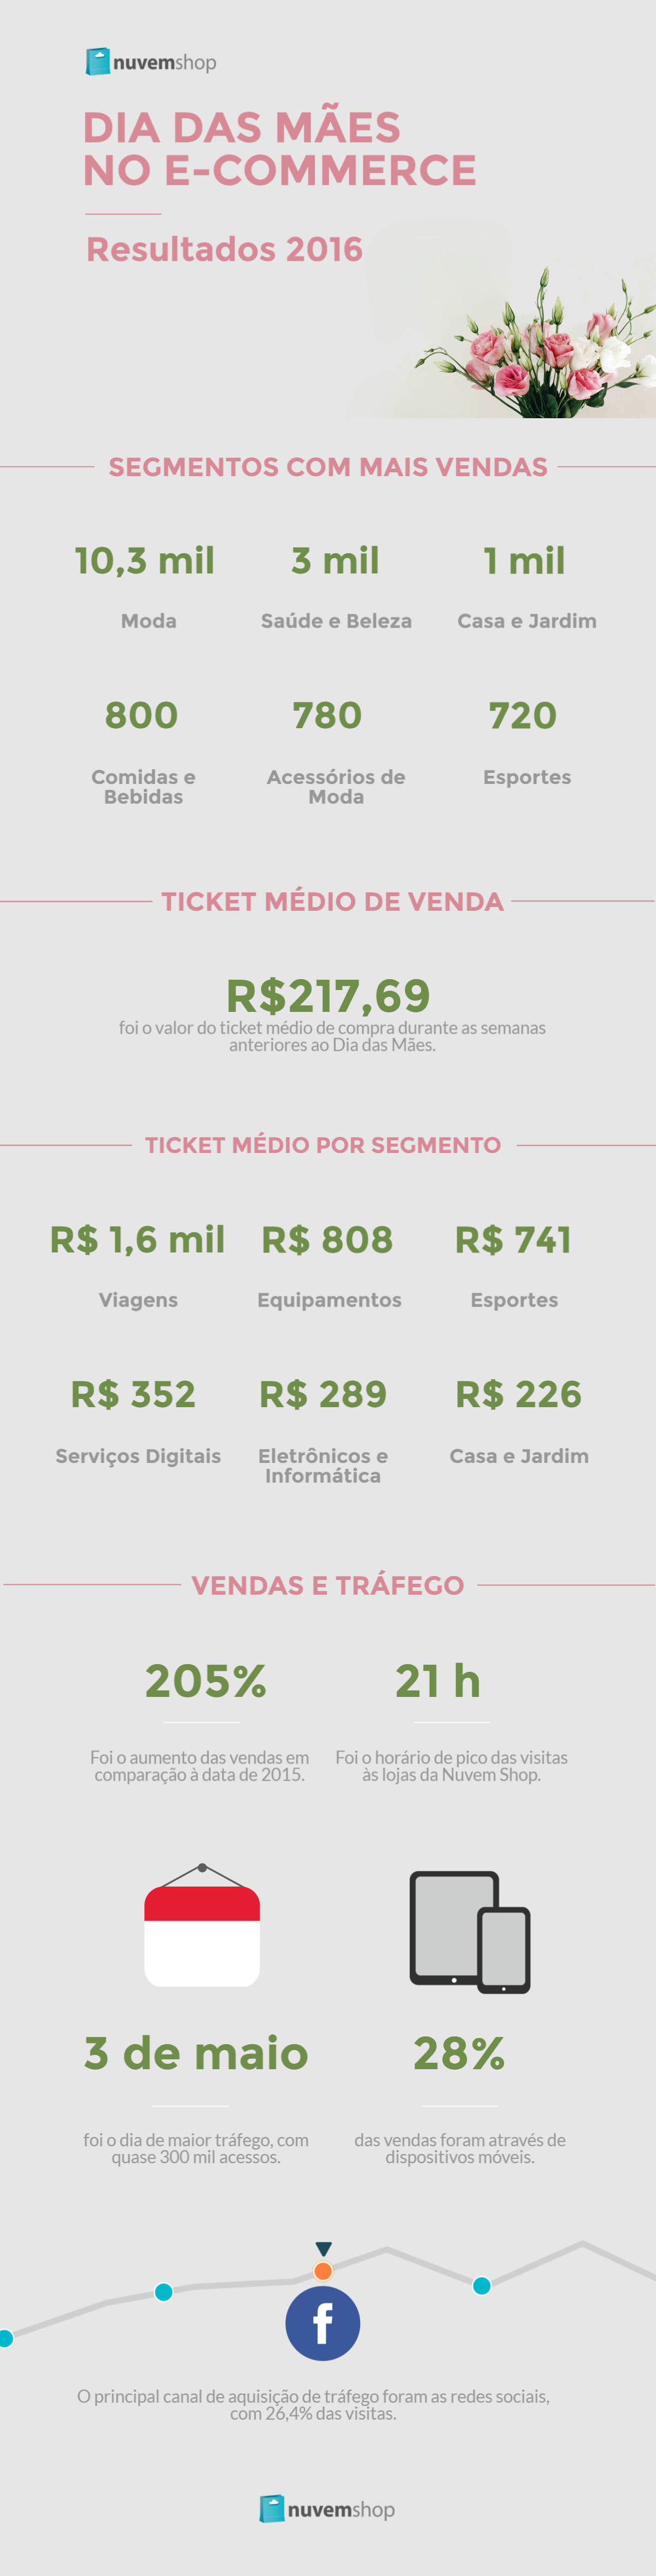 Infográfico Dia das Mães no E-commerce